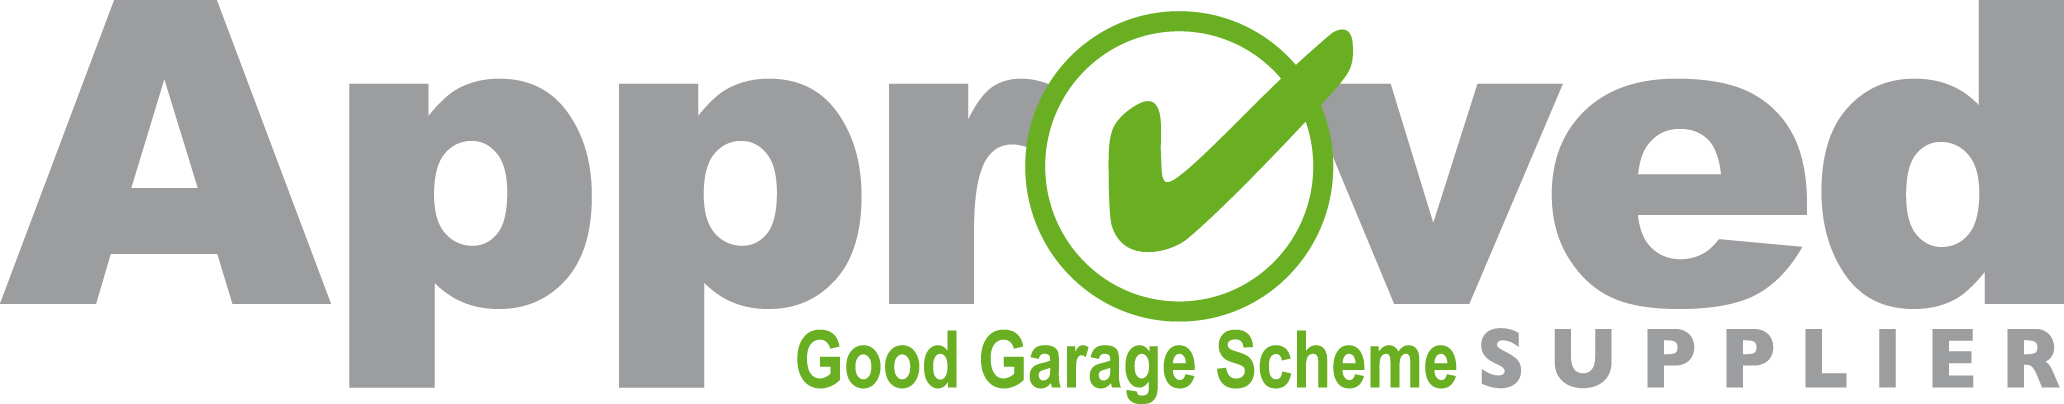 Approved GGS Supplier Logo